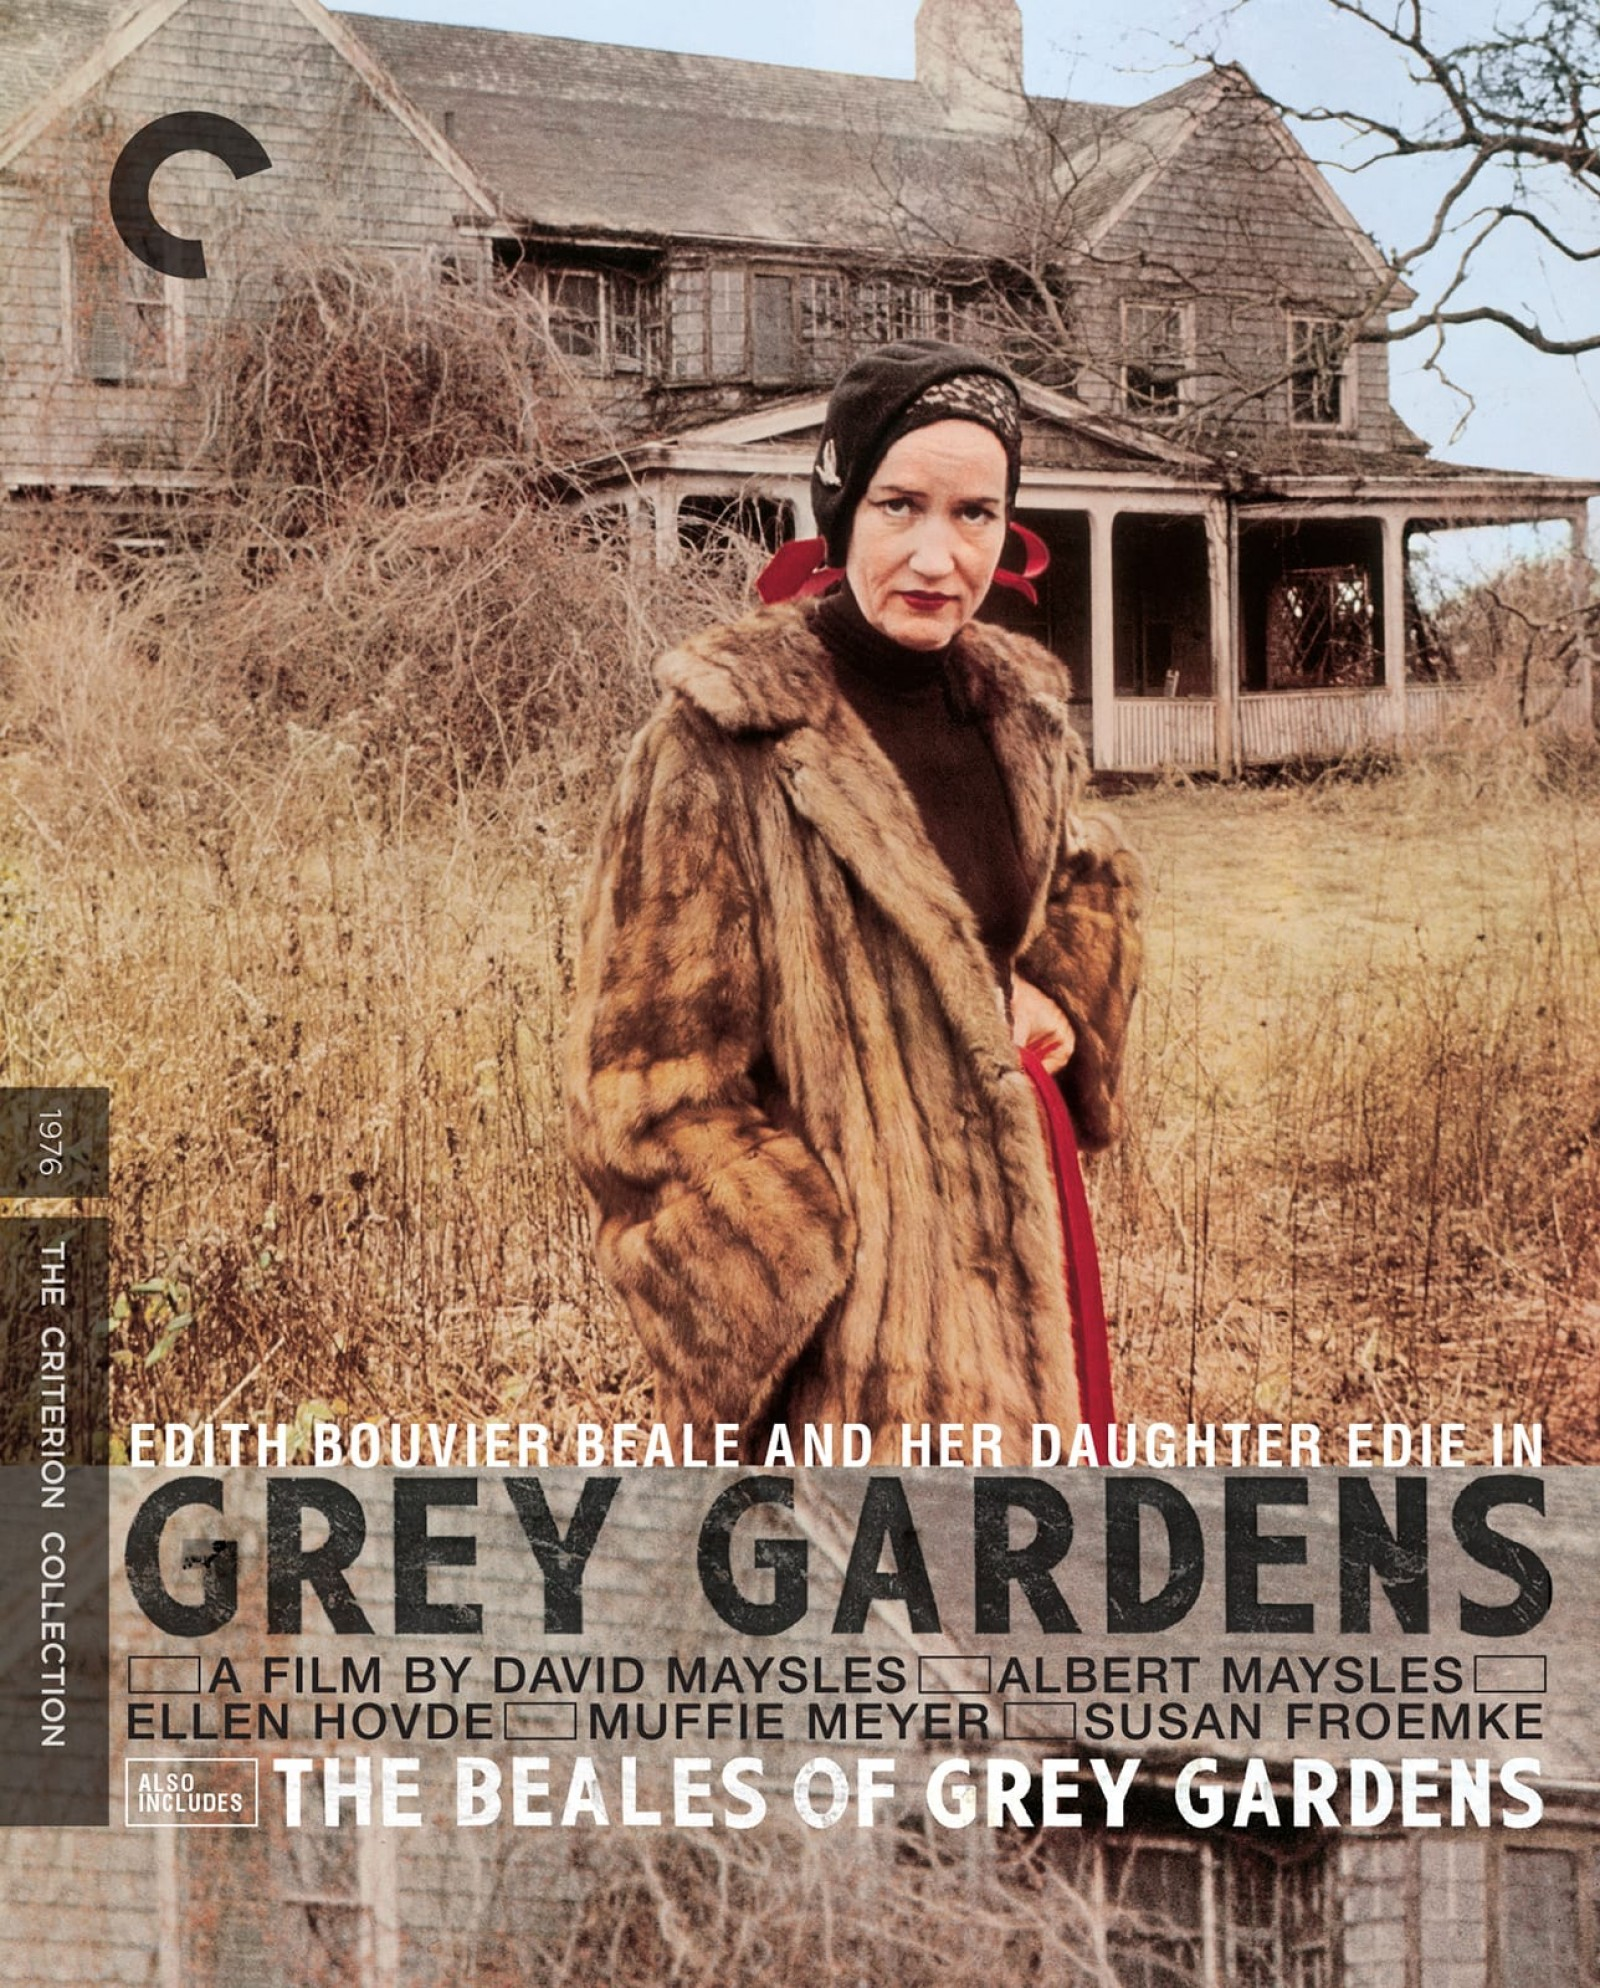 Grey Gardens The Beales of Grey Gardens Box Set